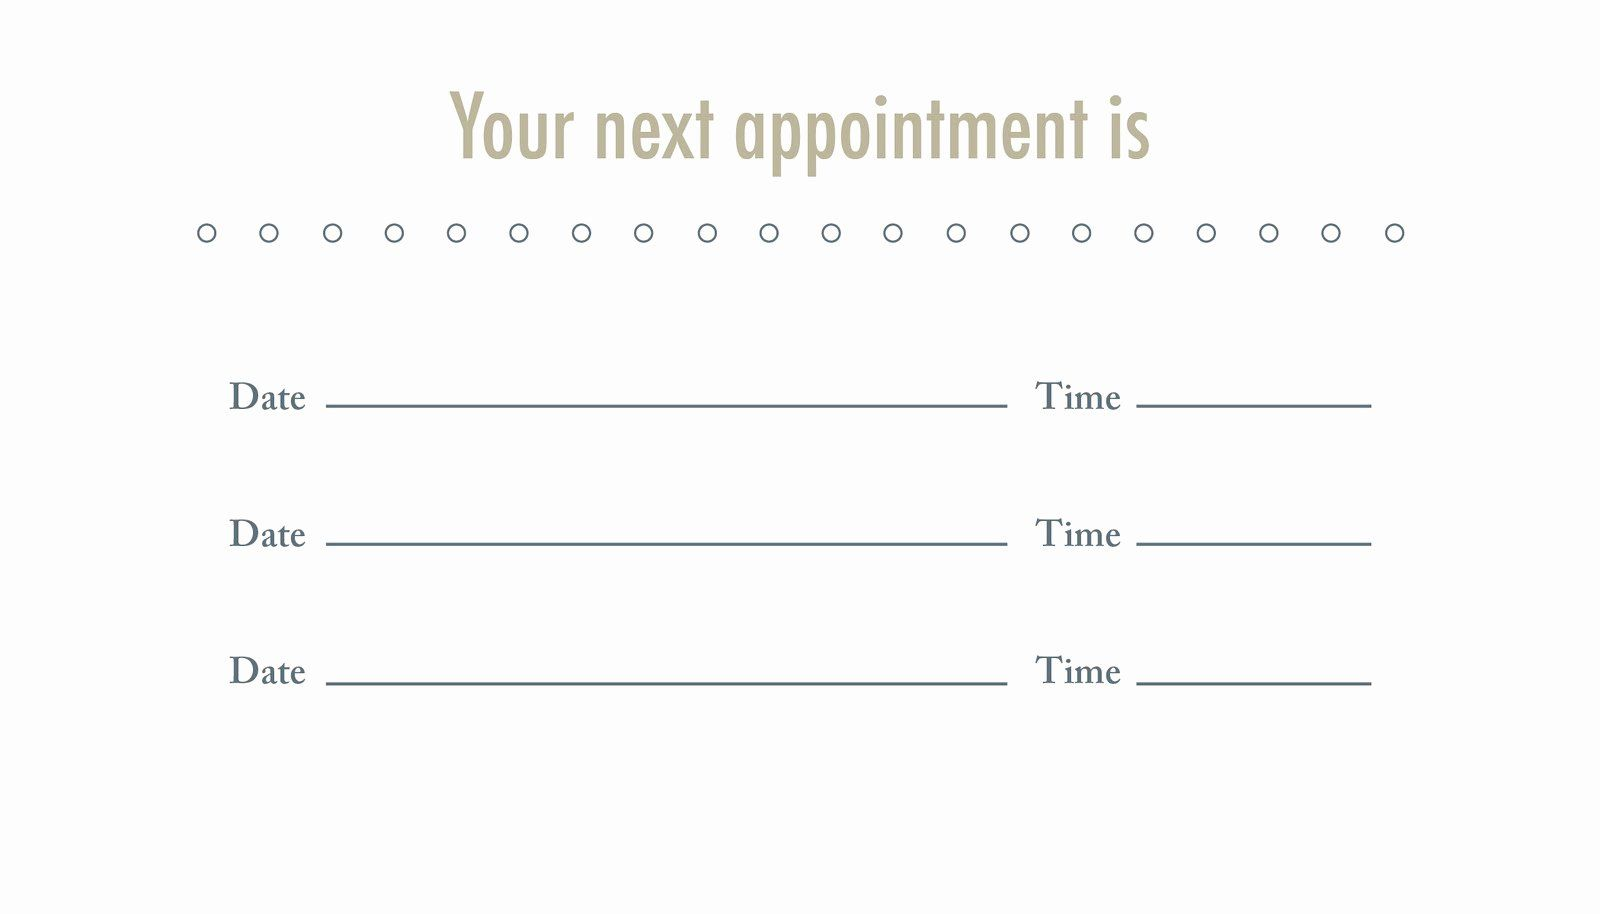 Appointment Reminder Cards Template Free Elegant The Fice Business Card Template Business Card Appointment Free Business Card Templates Dental Business Cards